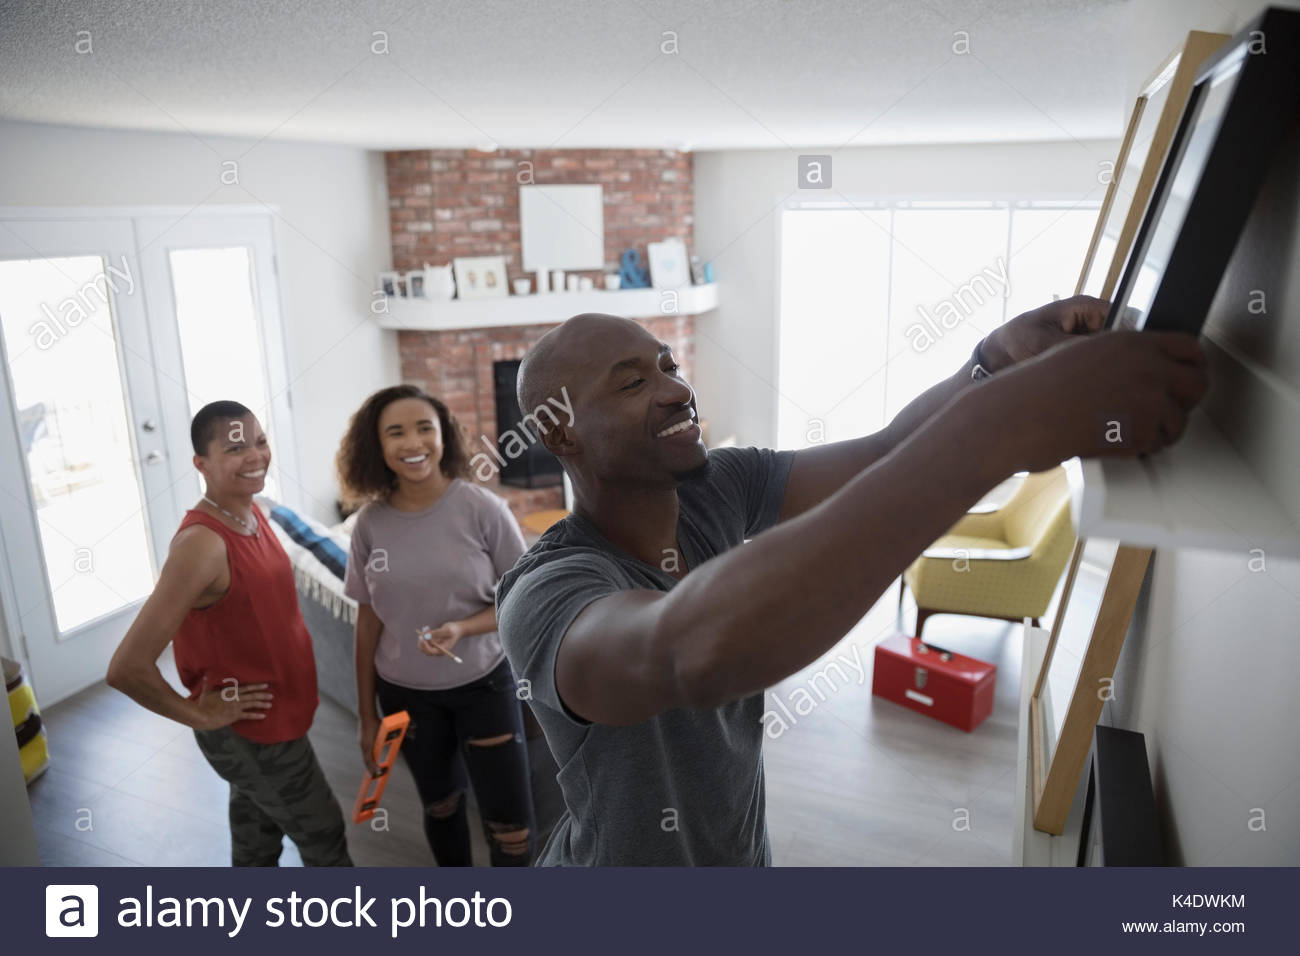 Family hanging picture frames on shelf in living room - Stock Image